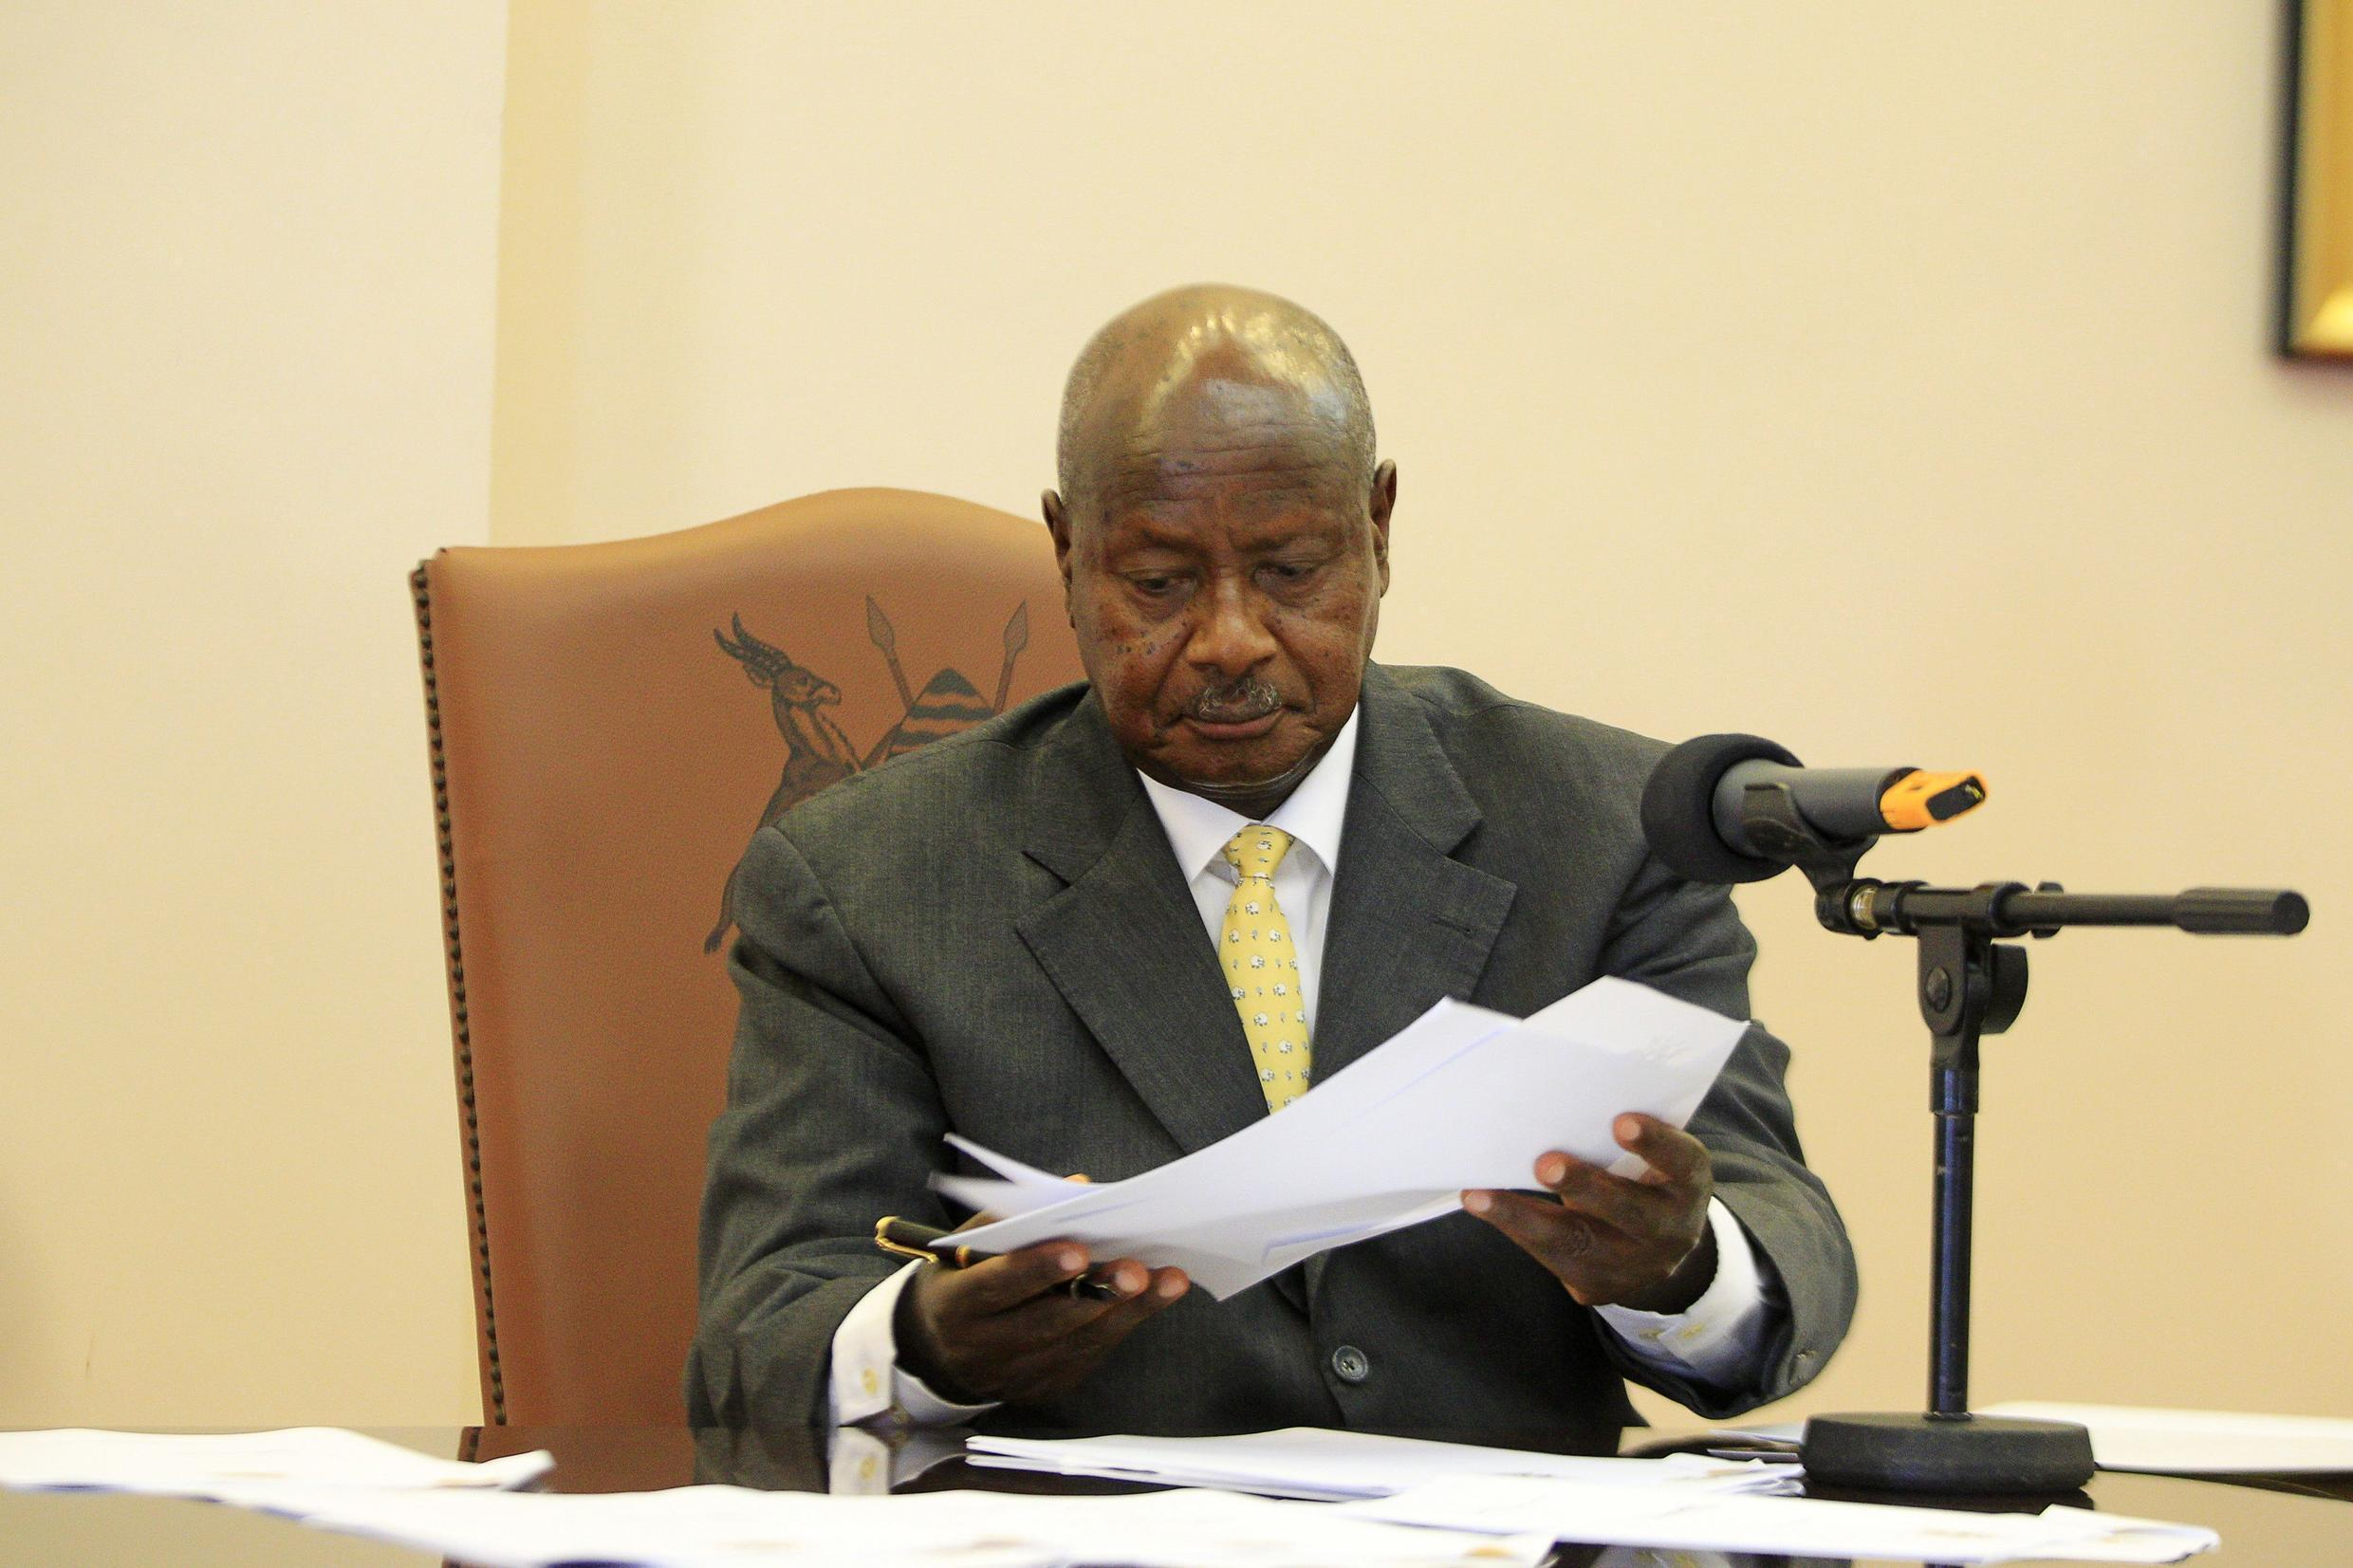 Uganda President Yoweri Museveni signs an anti-homosexual bill at the state house in Entebbe, 24 February, 2014